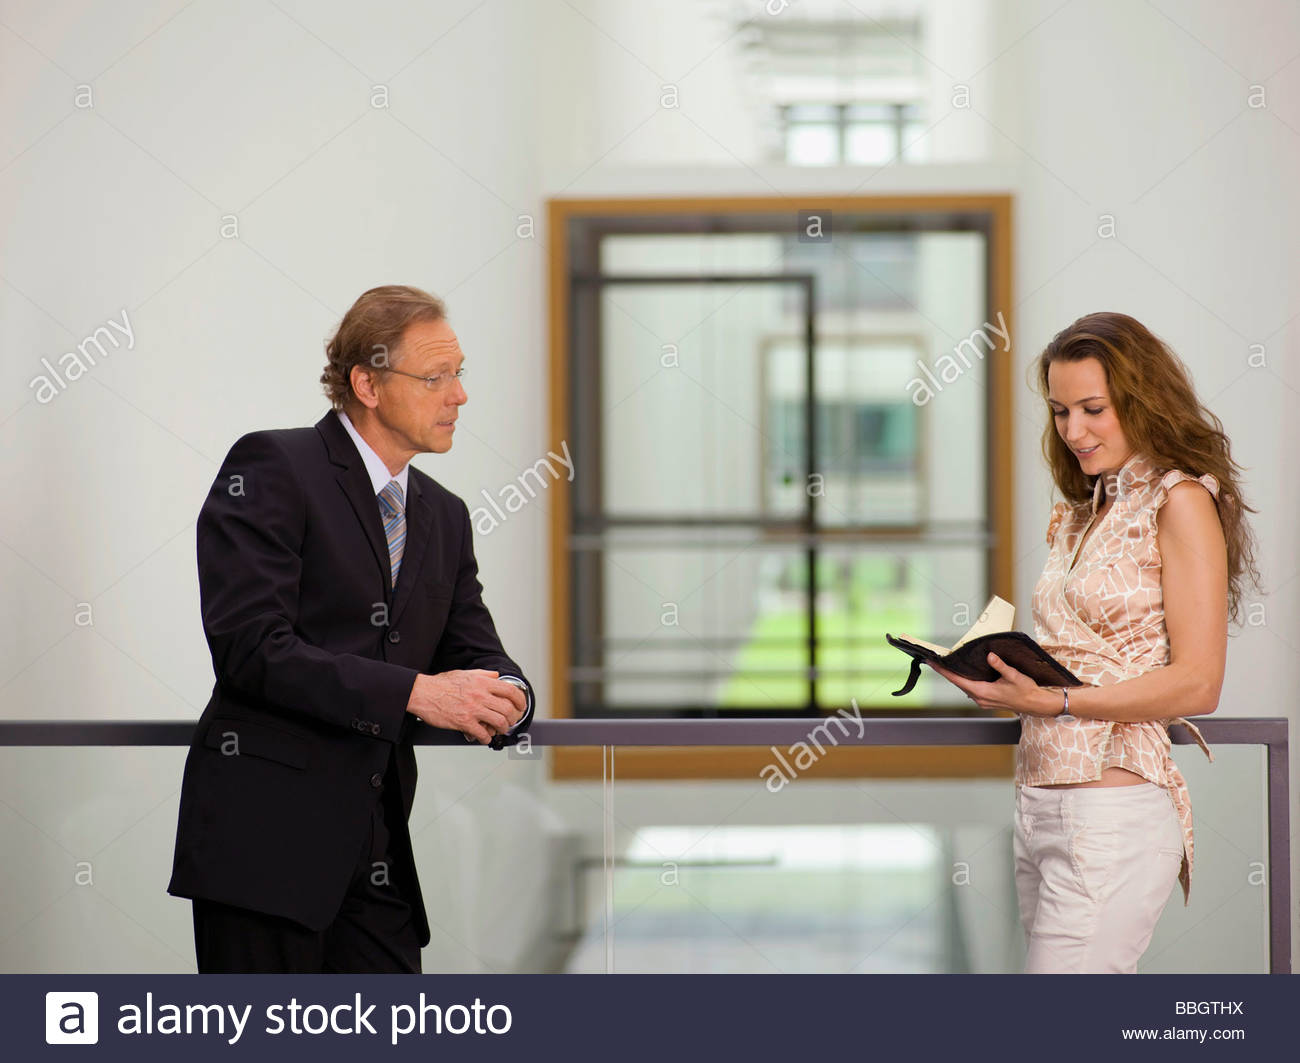 Businesspeople scheduling meeting - Stock Image